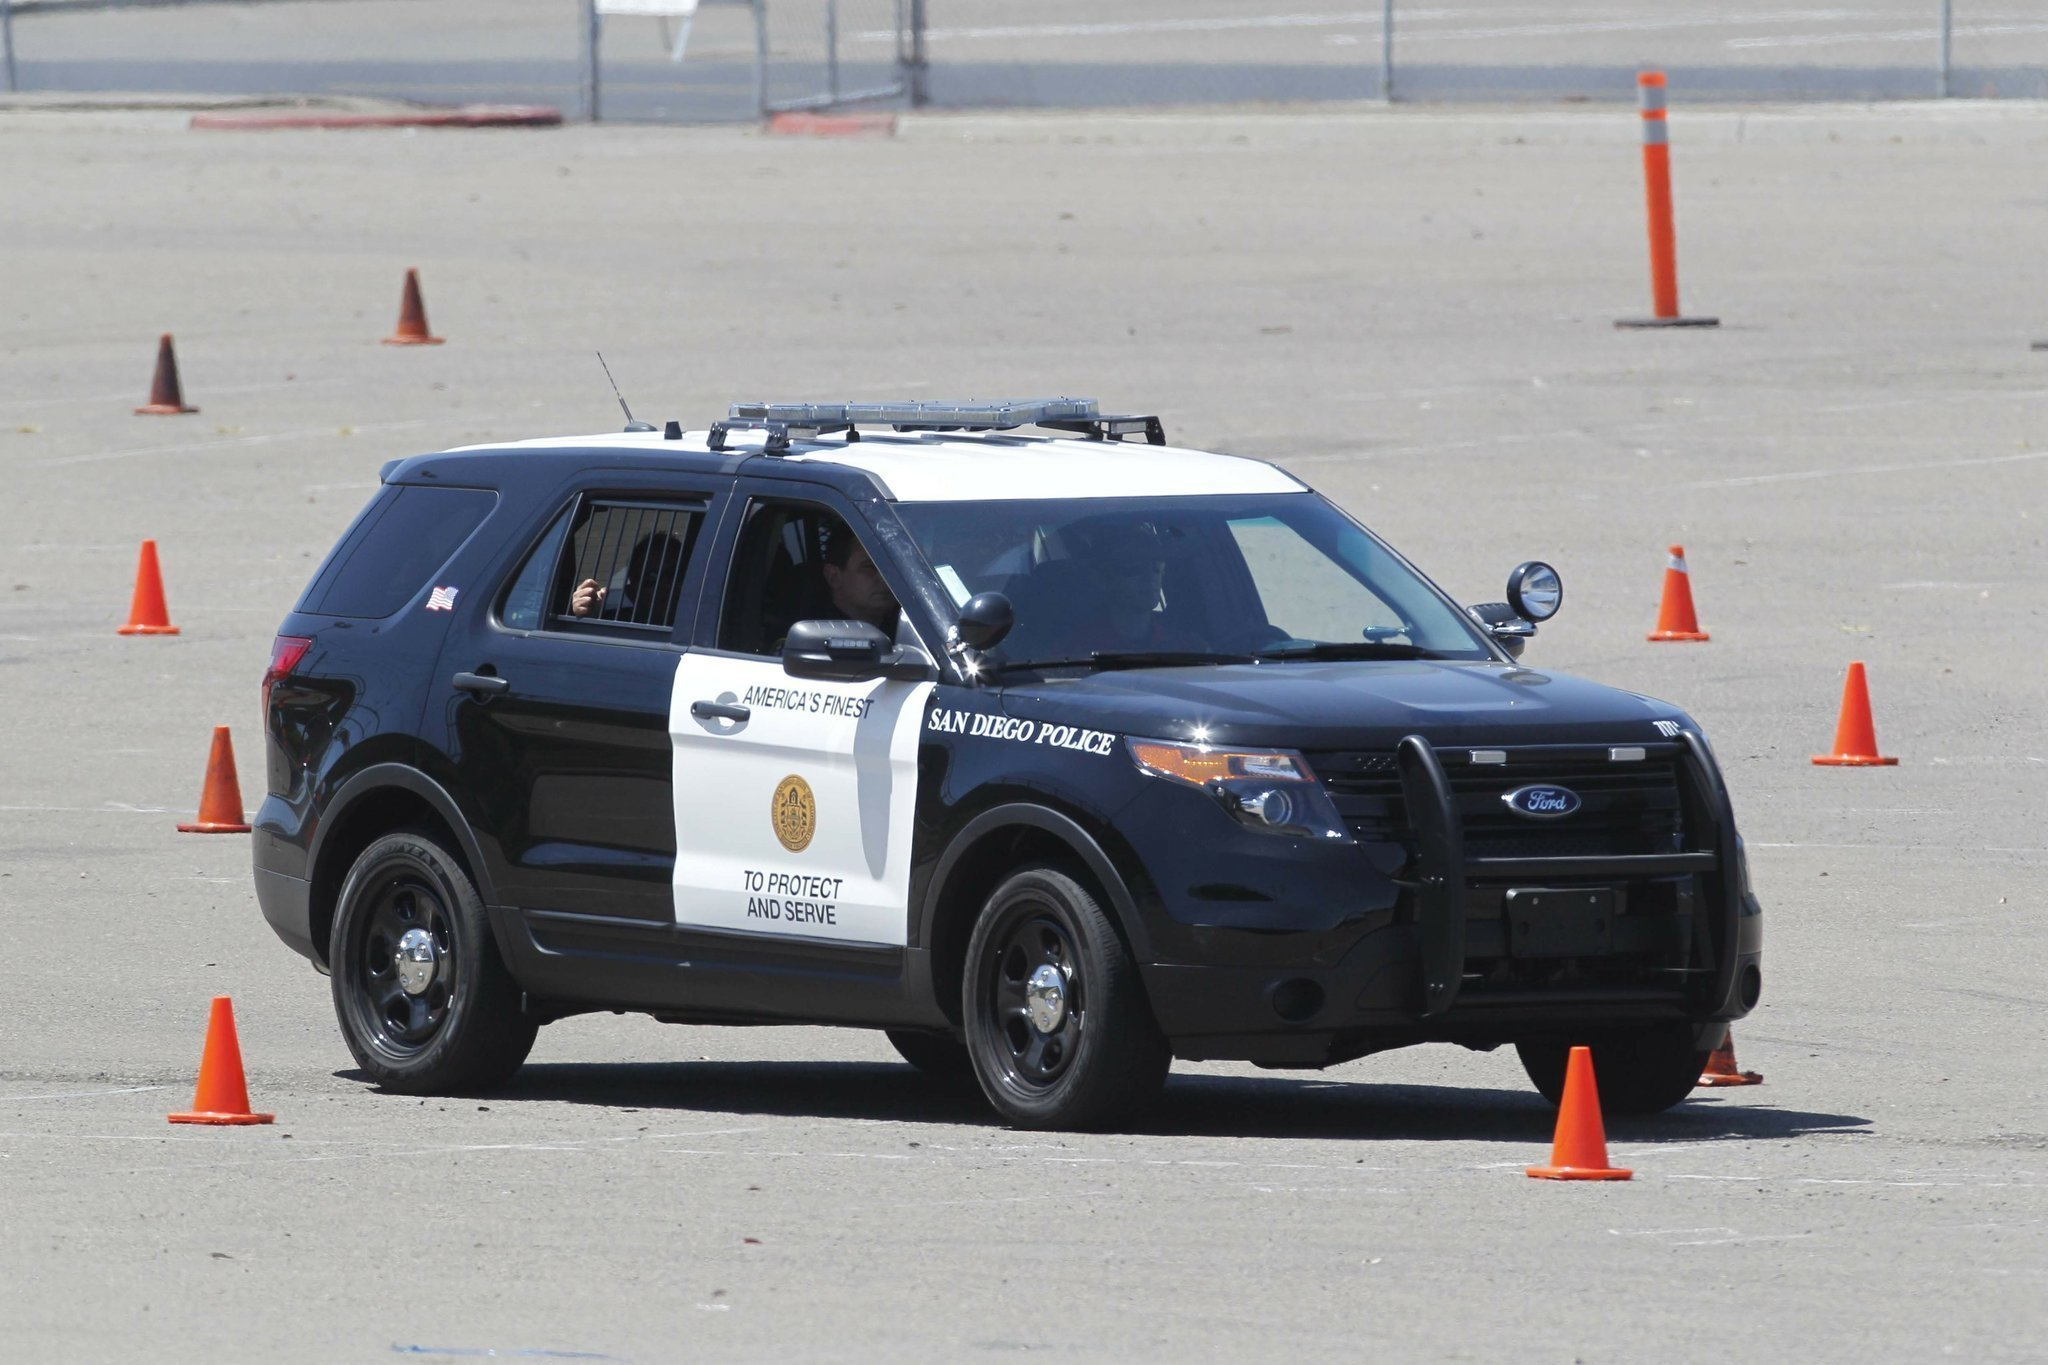 & New SDPD cars bigger faster better - The San Diego Union-Tribune markmcfarlin.com